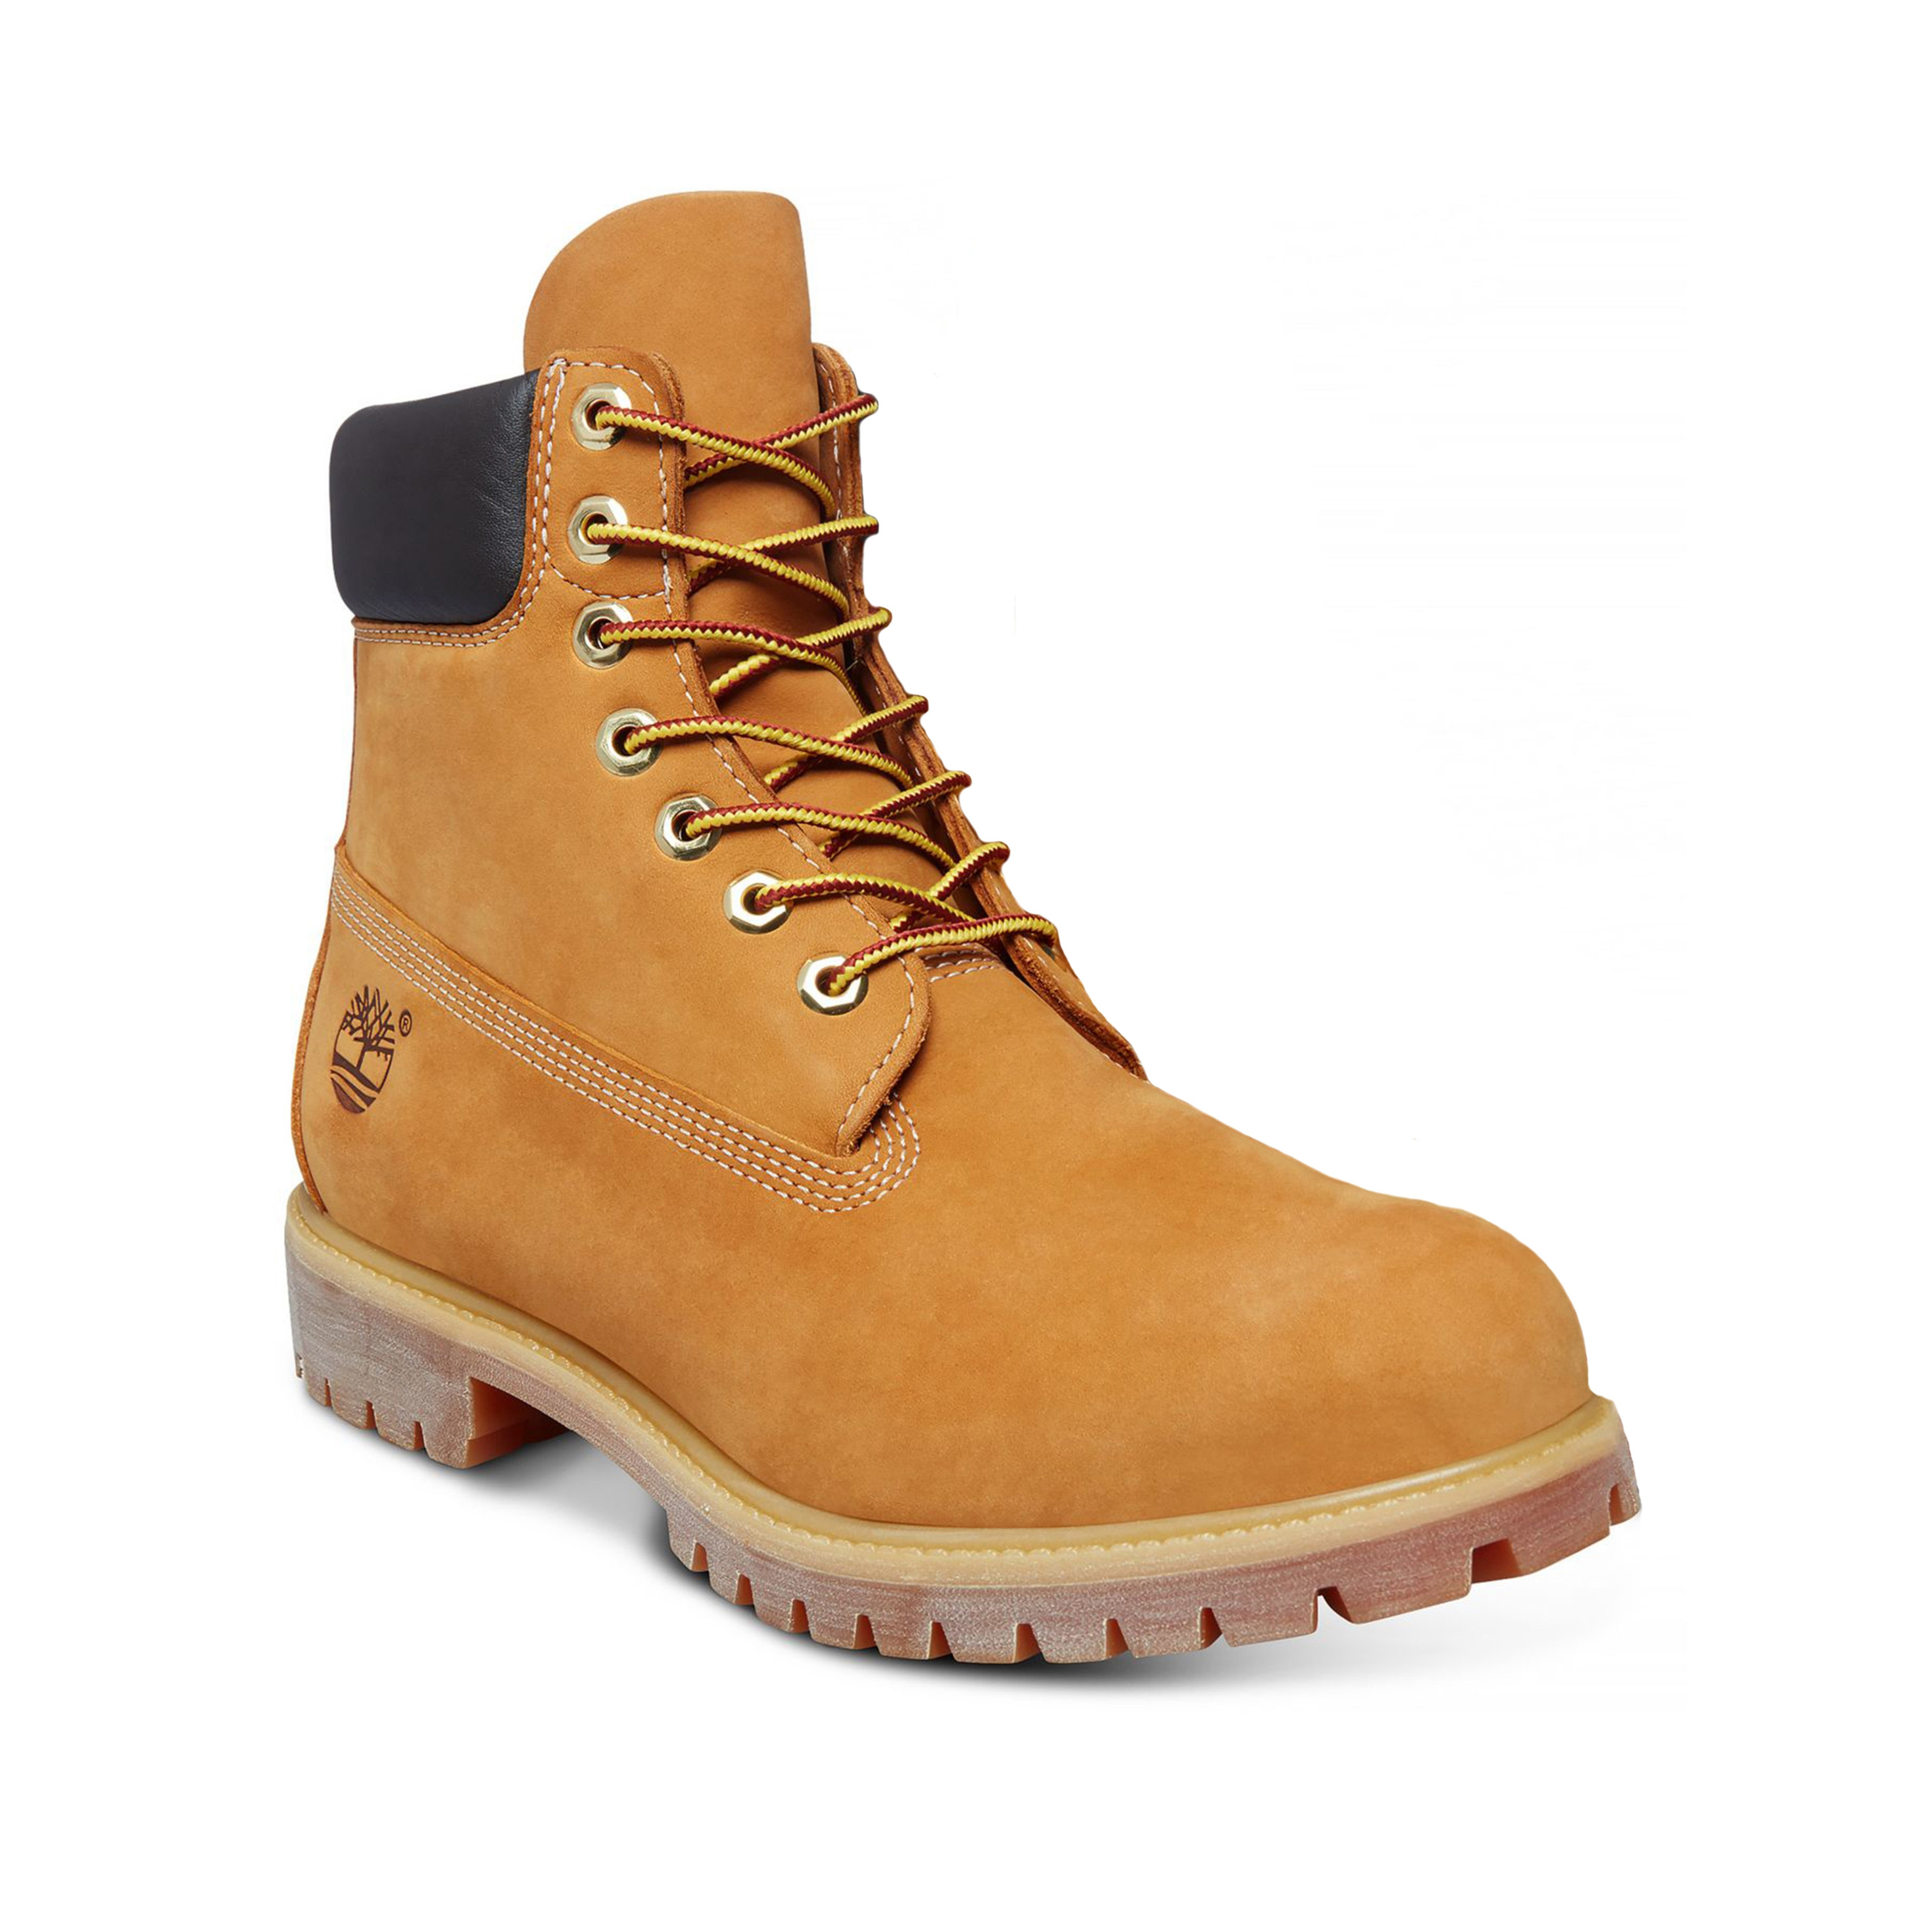 5bedd18685c Timberland Premium 6 Inch Leather High Boots Wheat Yellow